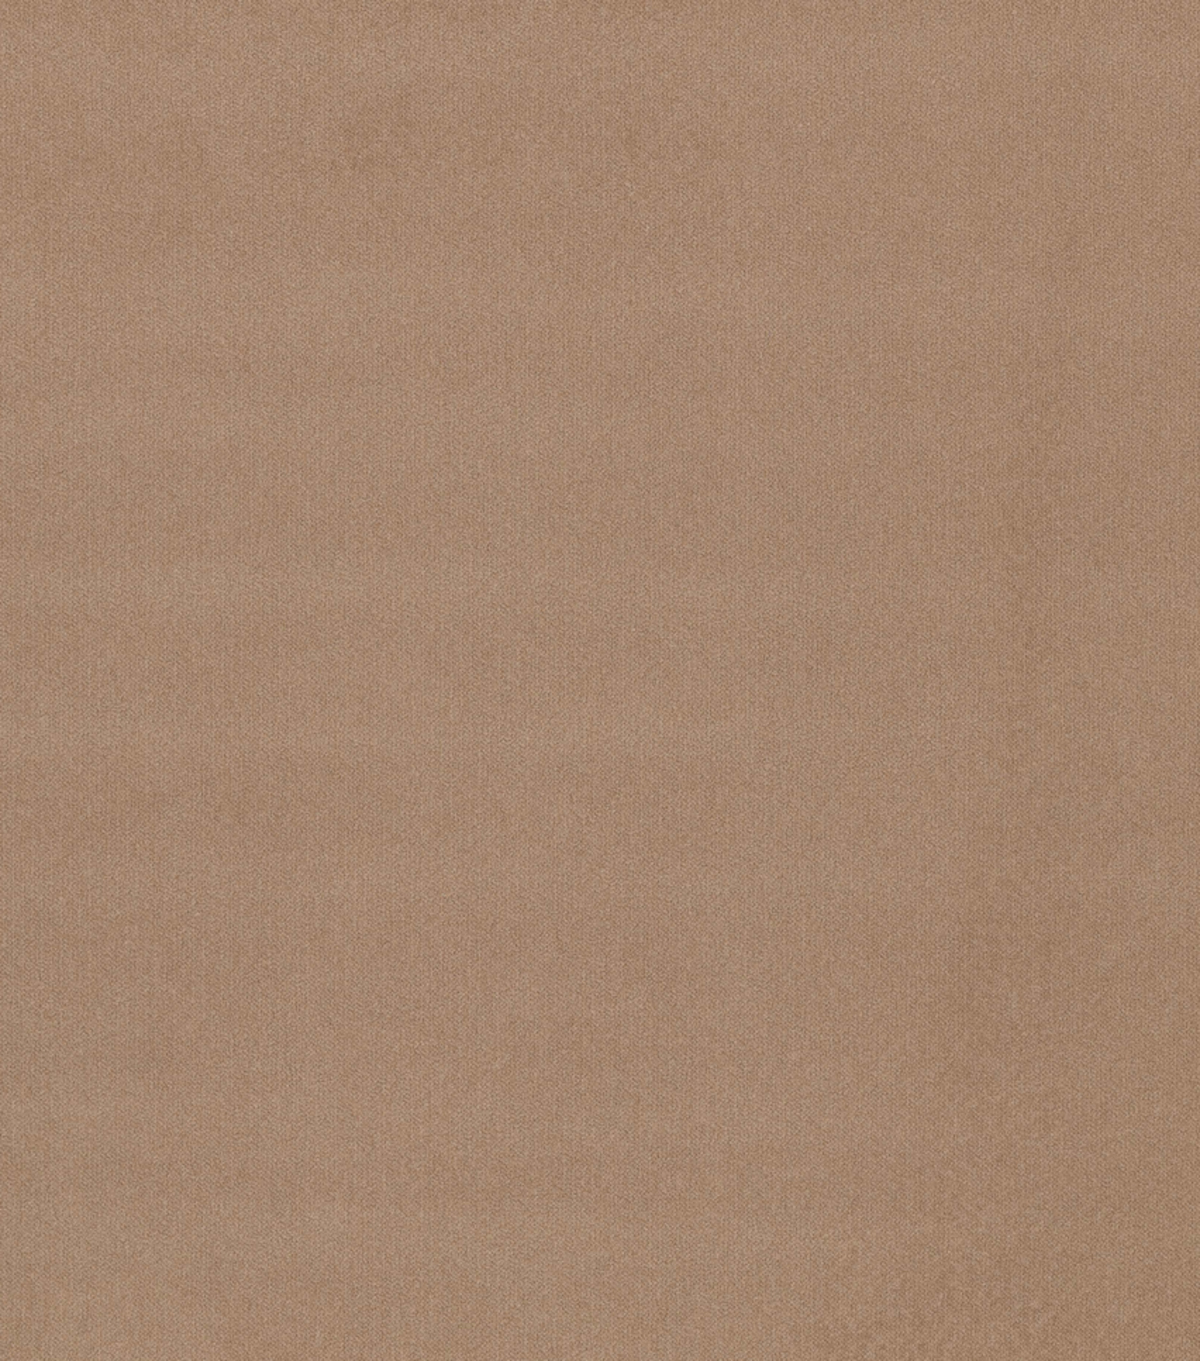 Home Decor 8\u0022x8\u0022 Fabric Swatch-Sedona Caramel